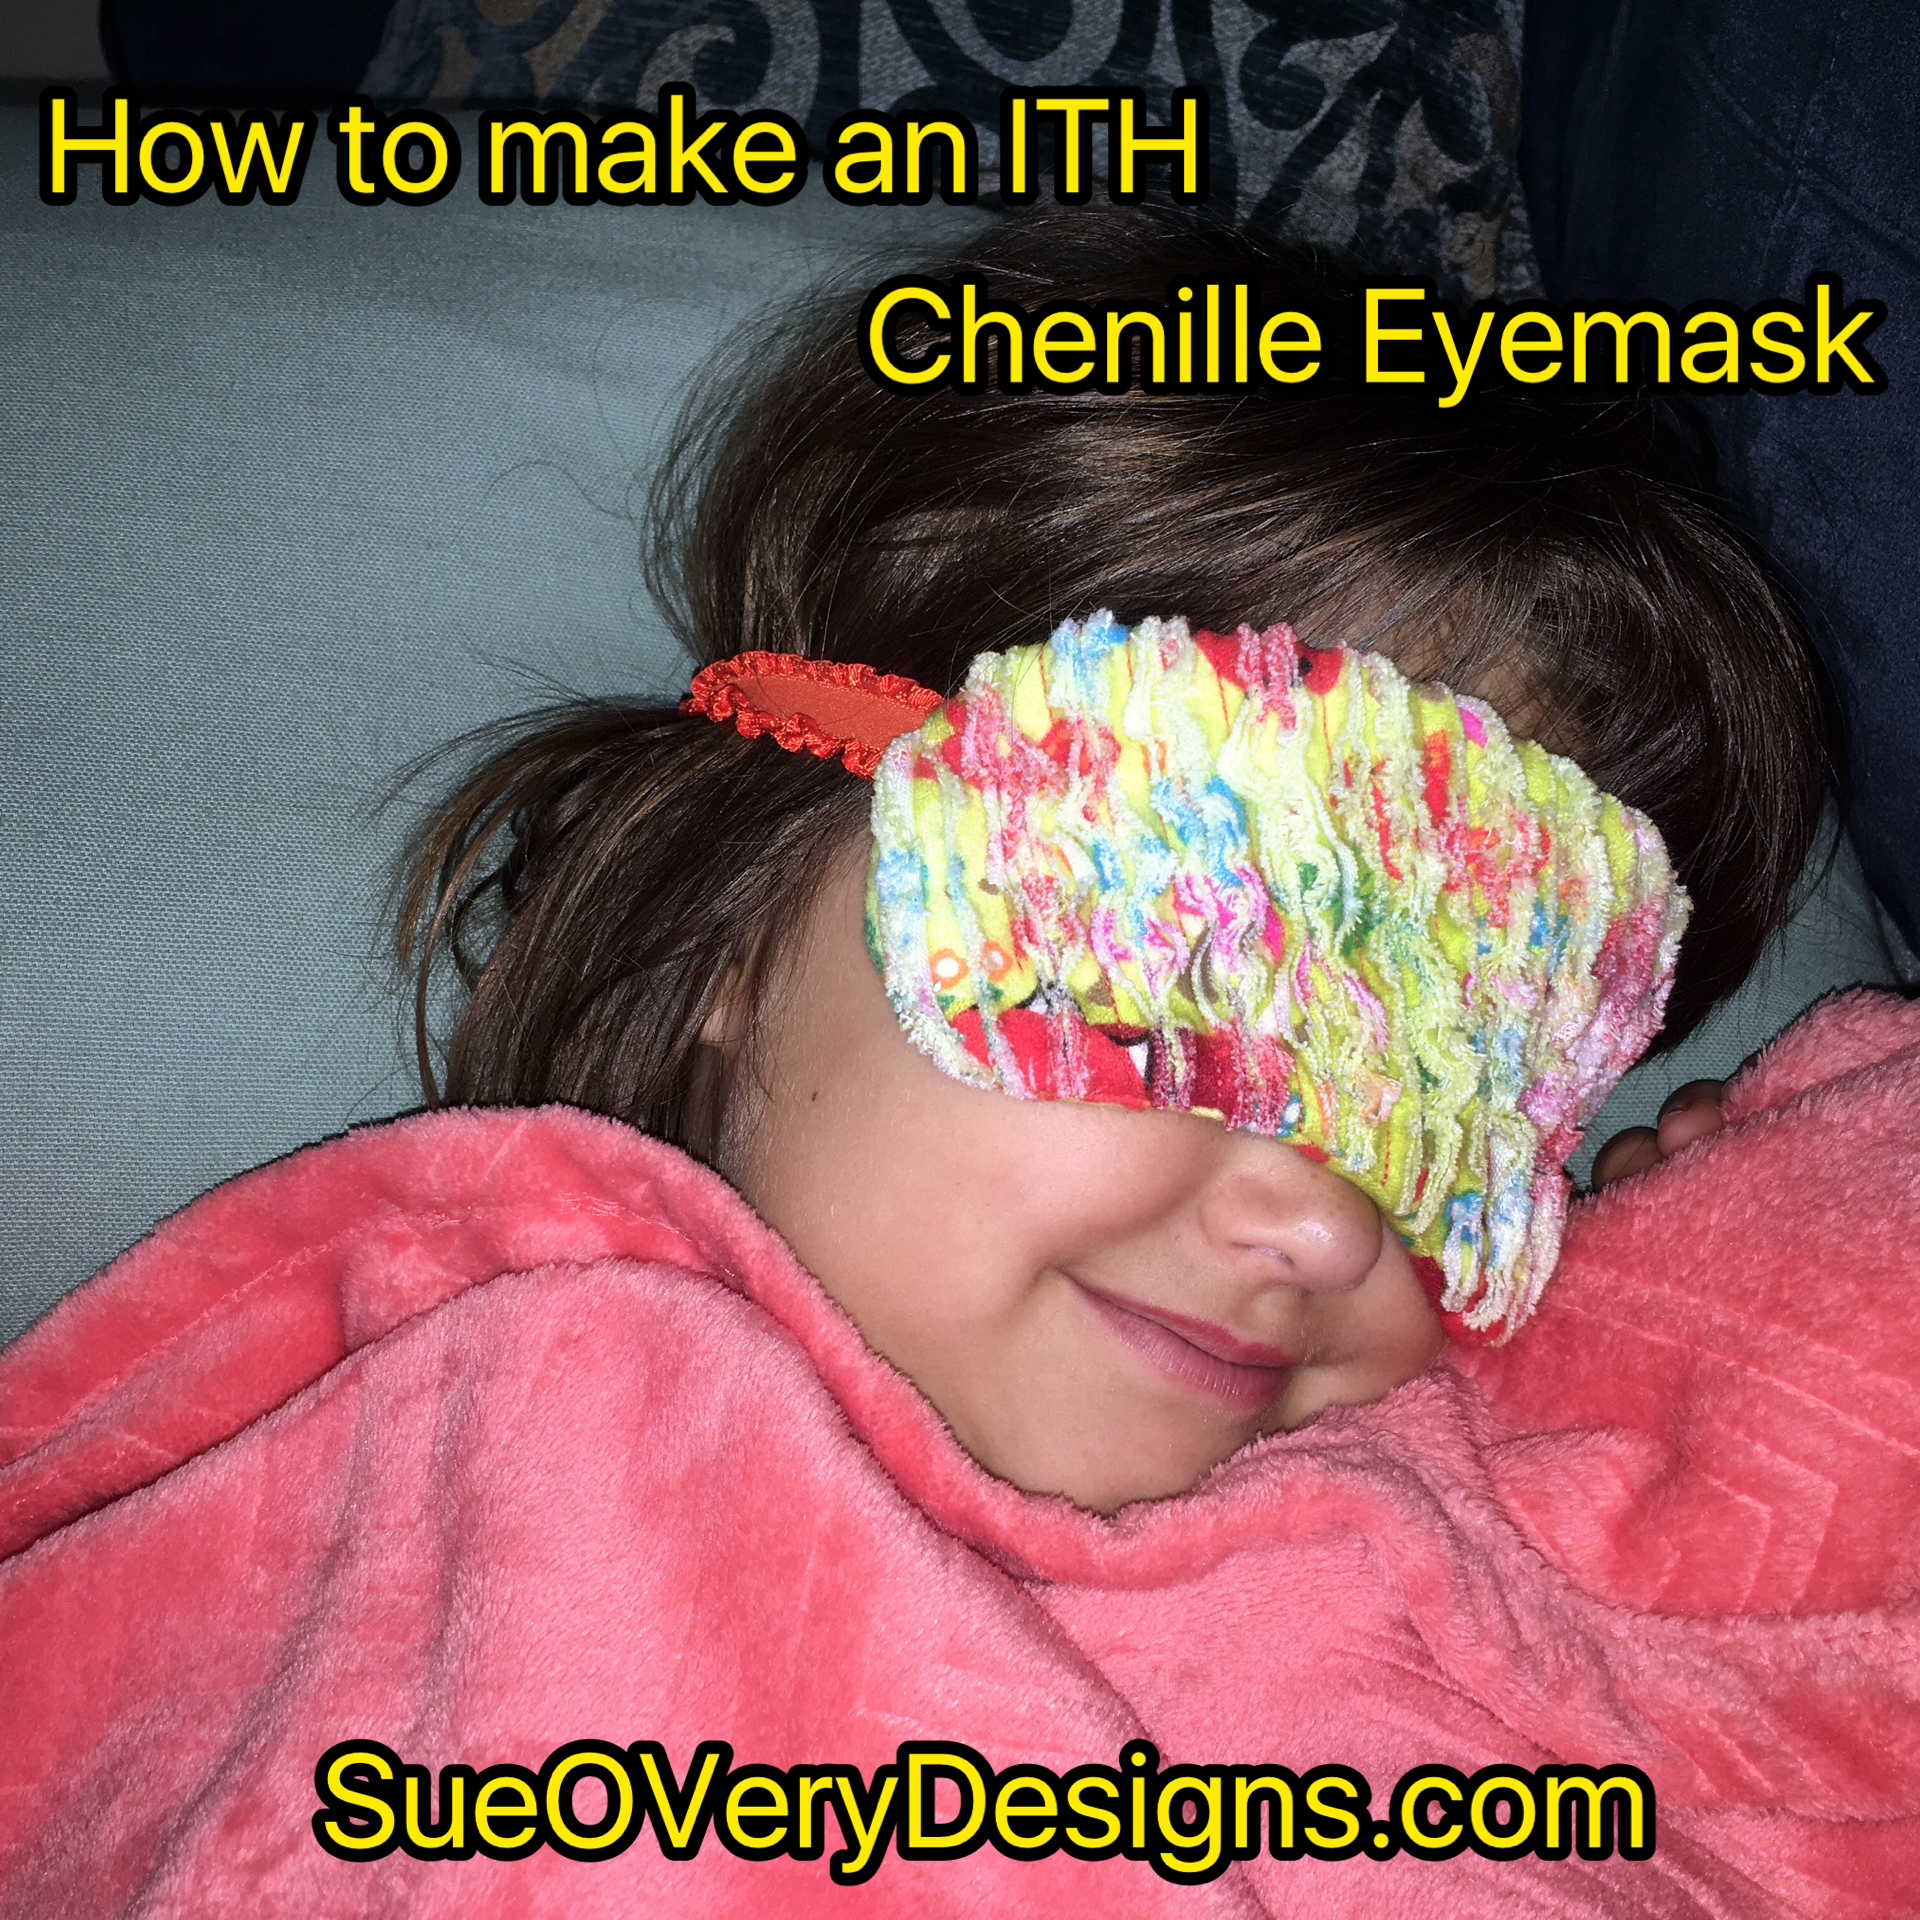 Chenille Eye mask – How to make ITH